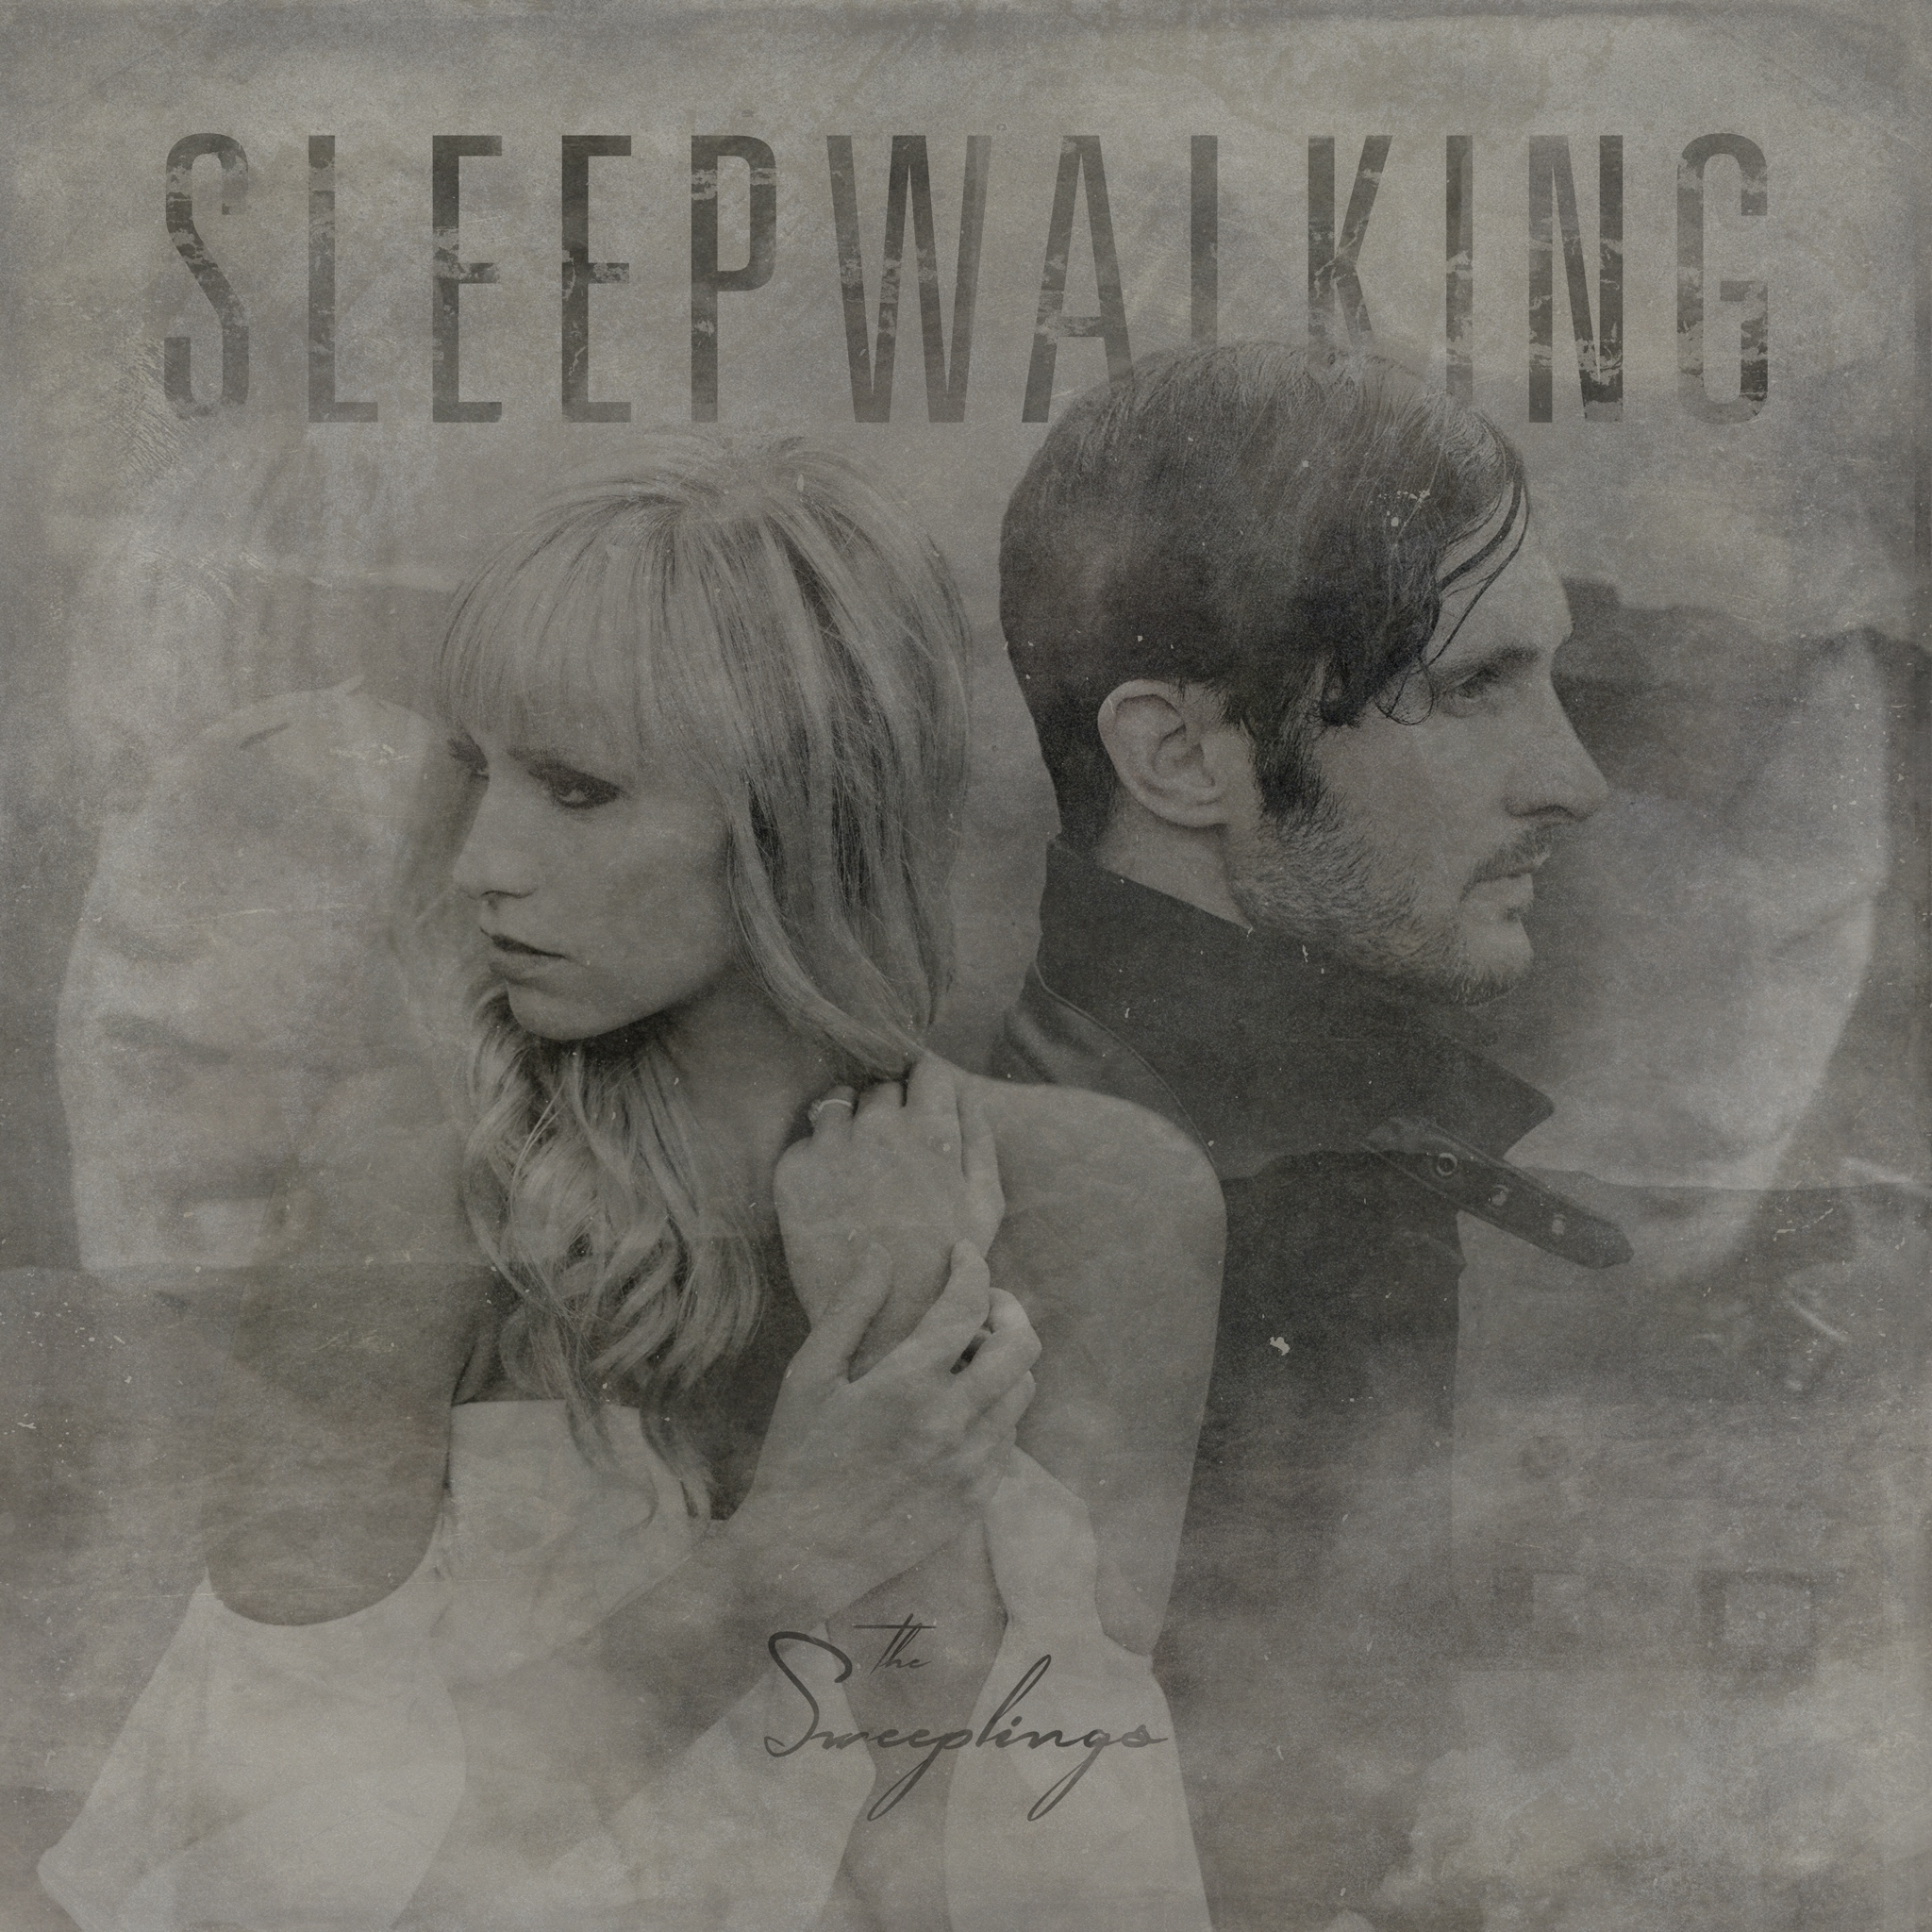 Sleepwalking - The Sweeplings